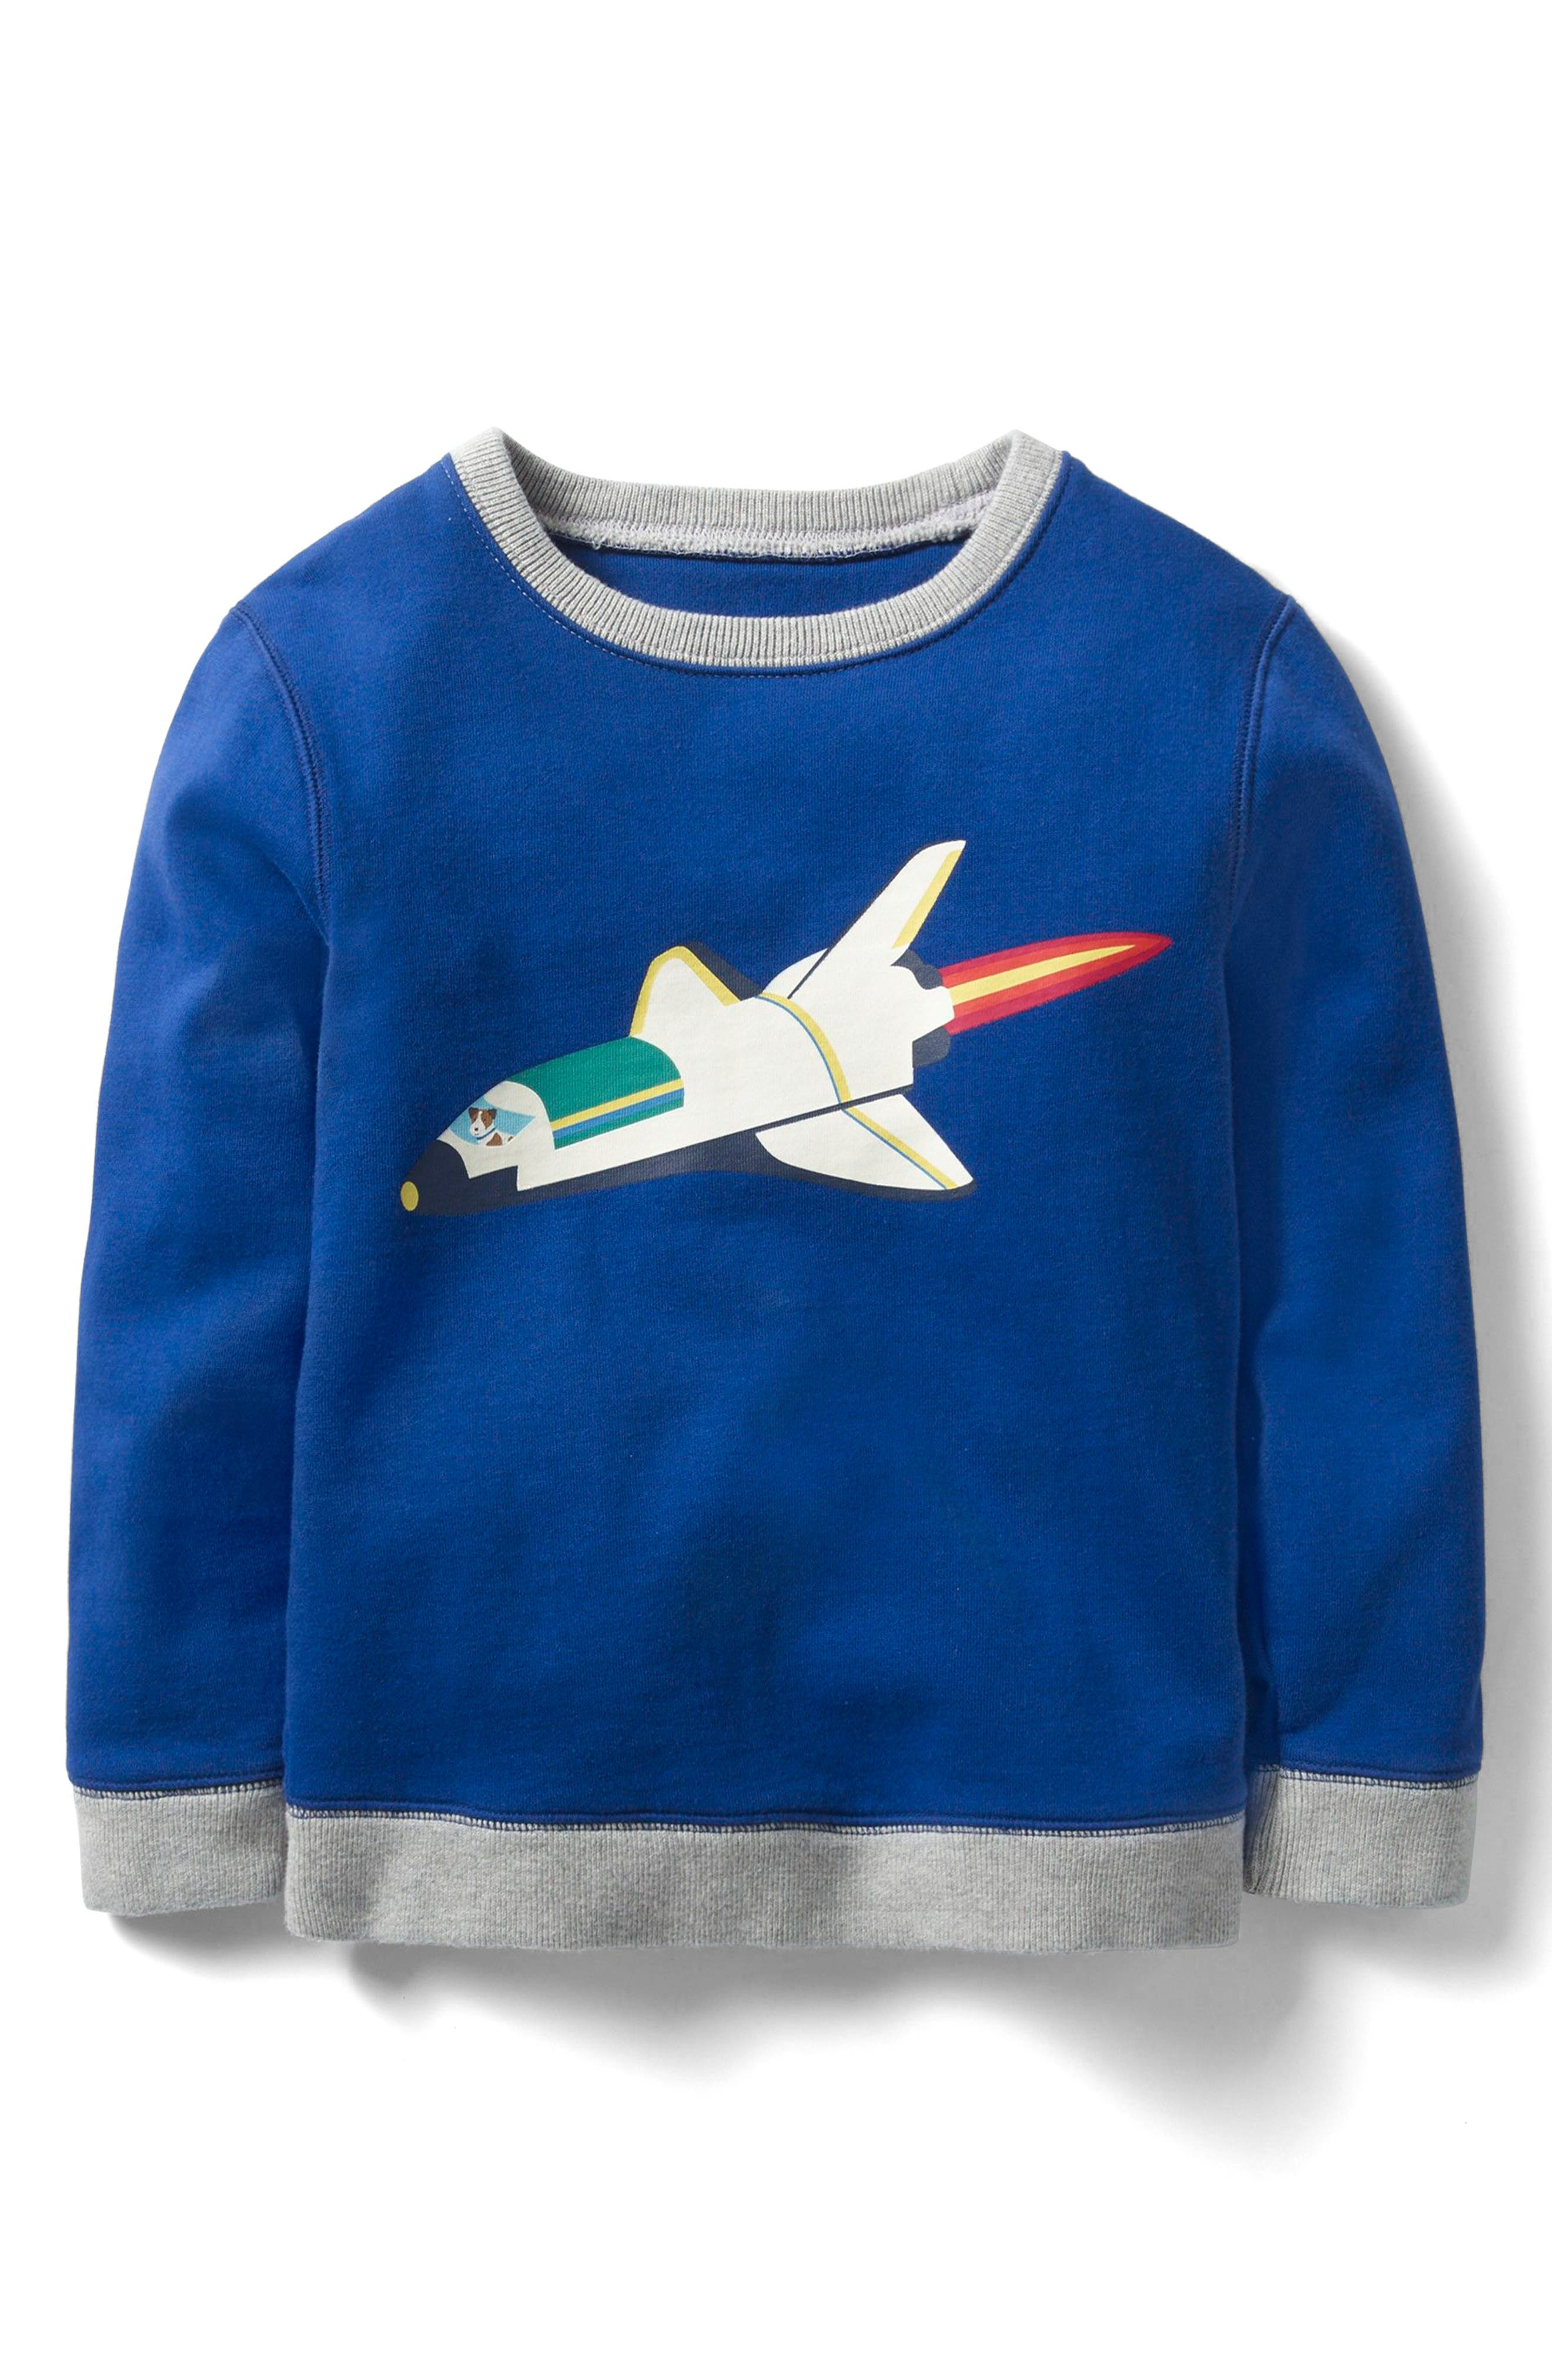 Mini Boden Glowing Space Graphic Sweatshirt (Toddler Boys, Little Boys, Big Boys)